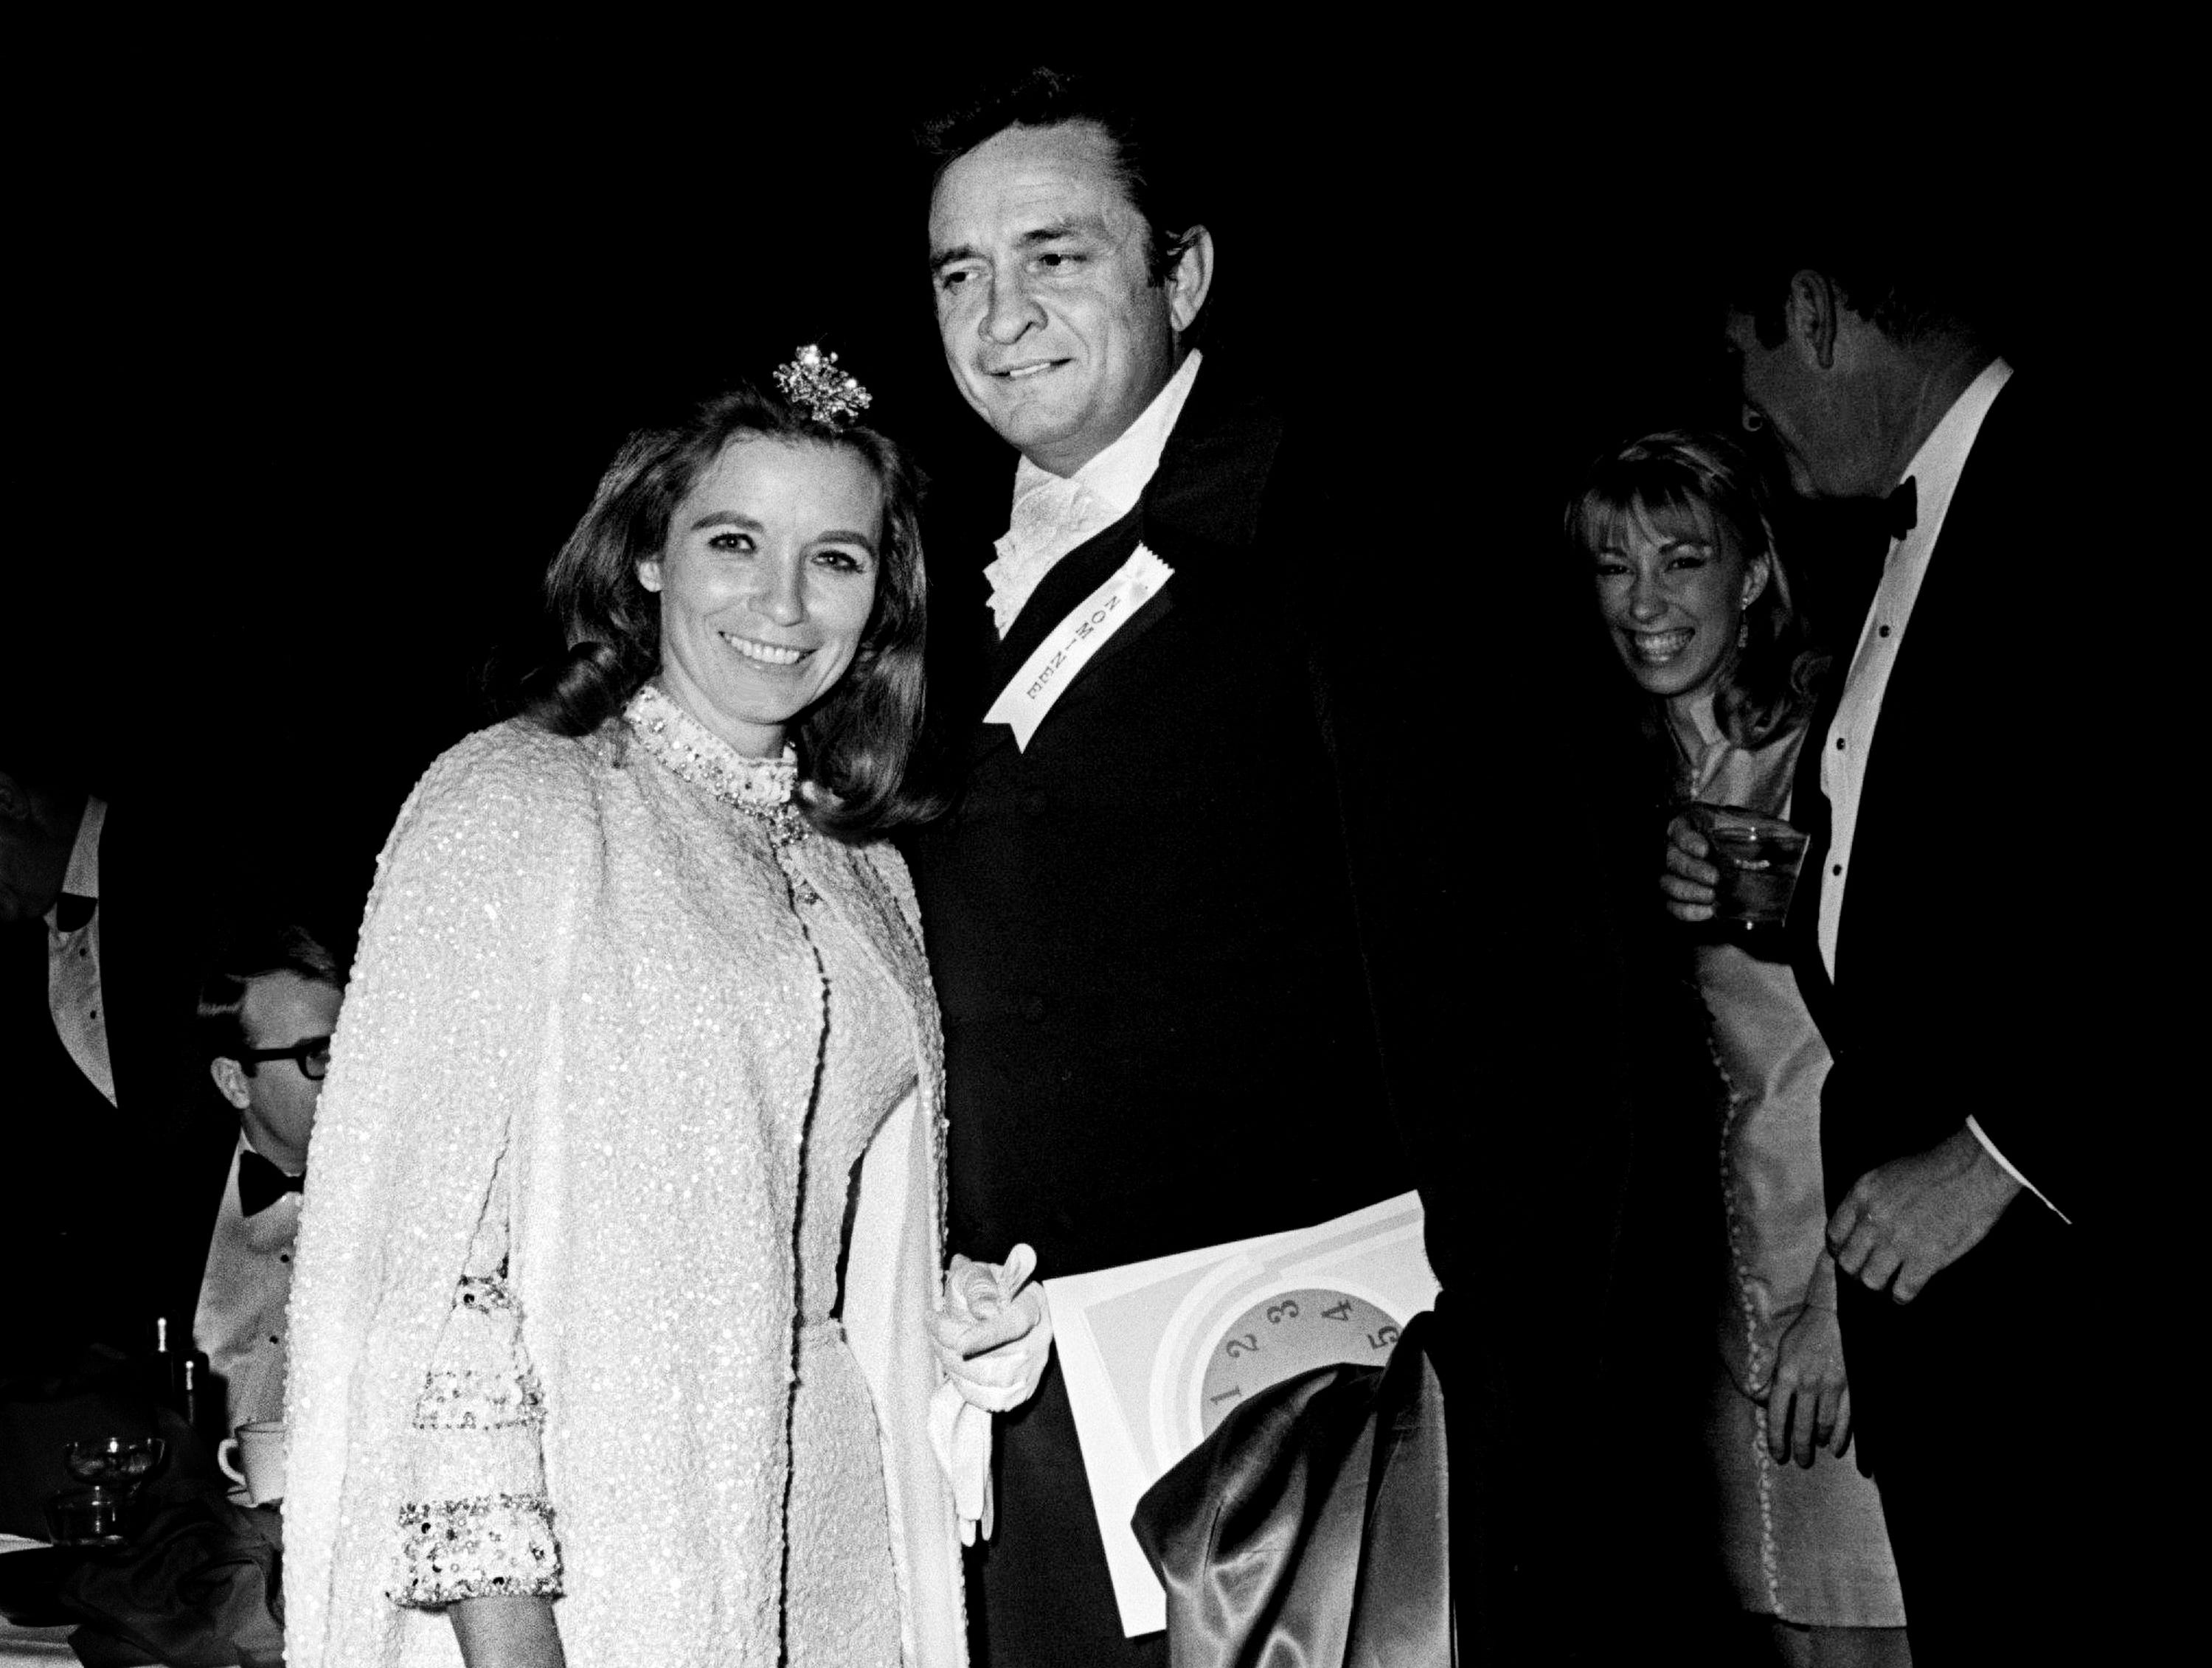 Country music star Johnny Cash and June Carter Cash arrive for the 11th annual Grammy Award show at the National Guard Armory in Nashville March 12, 1969. The awards were presented simultaneously at banquets in New York, Chicago, Los Angeles and Nashville.